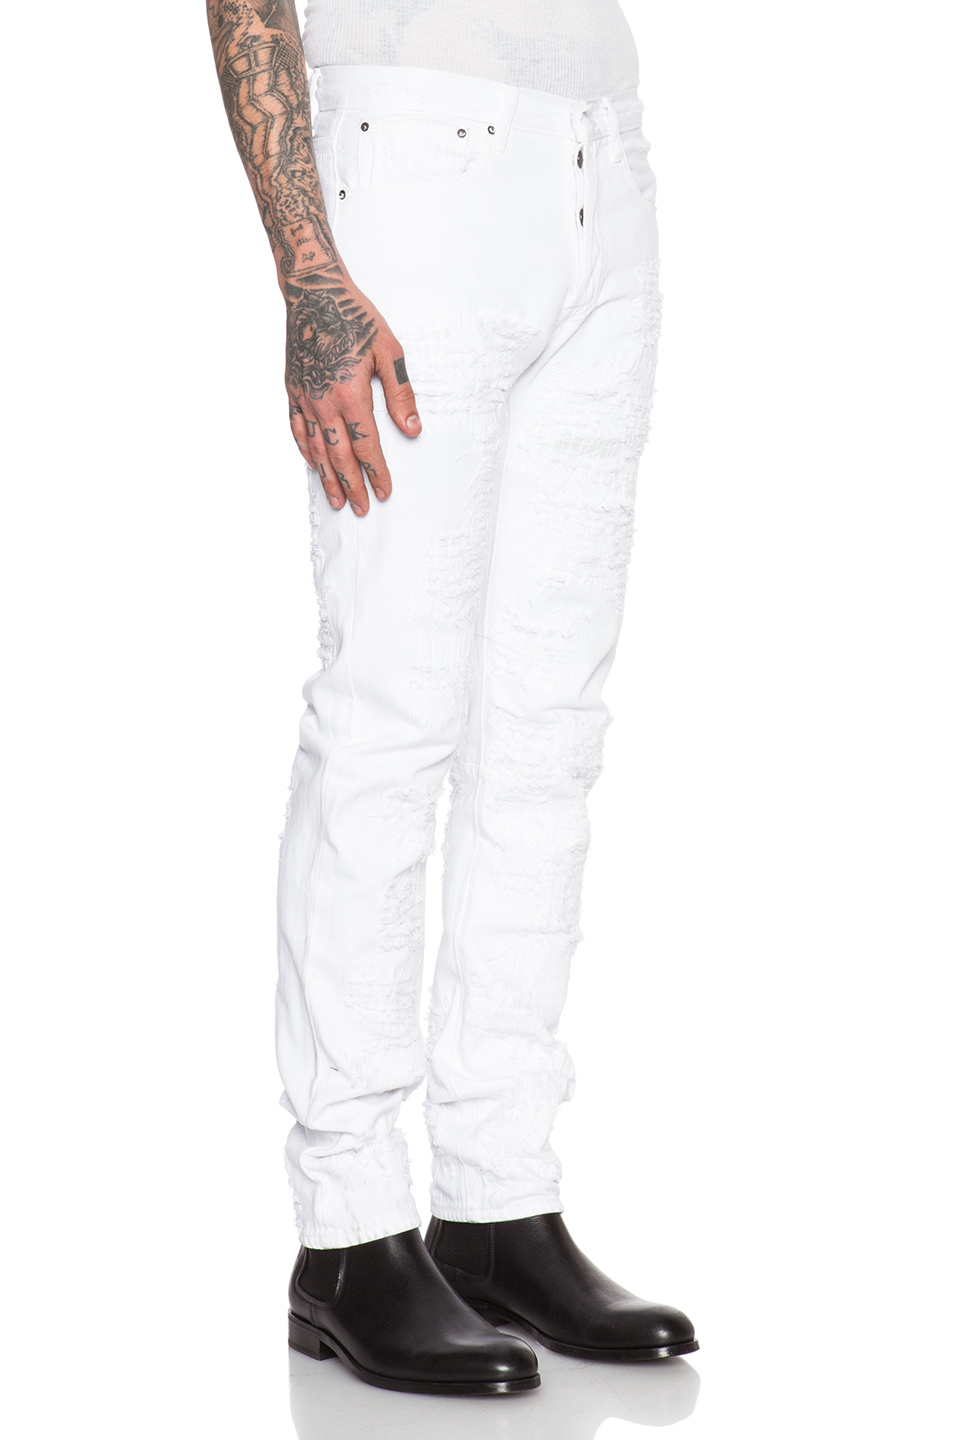 Mens Slim Jeans Siki Im Hot Sale Cheap Online Exclusive Online Hurry Up Shopping Online High Quality wpRXoA